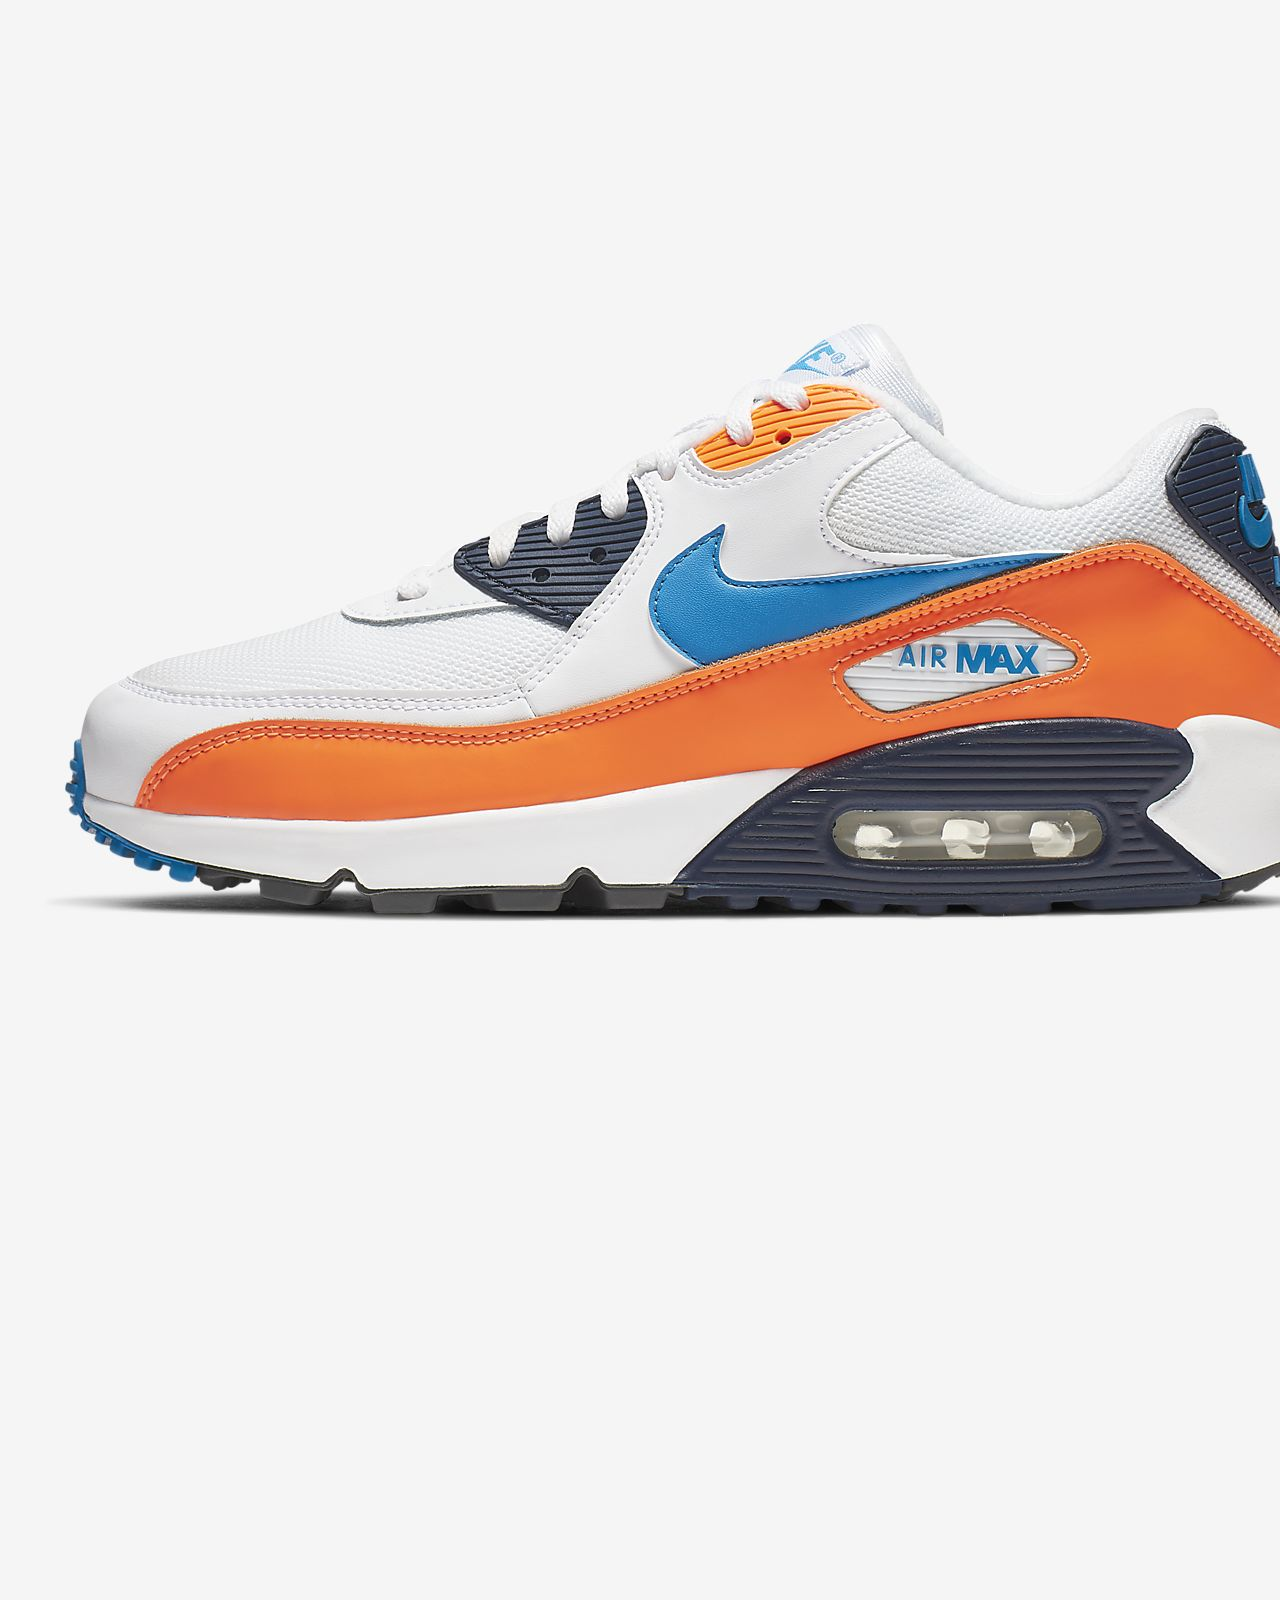 separation shoes 7b153 95627 ... Nike Air Max 90 Essential Men s Shoe